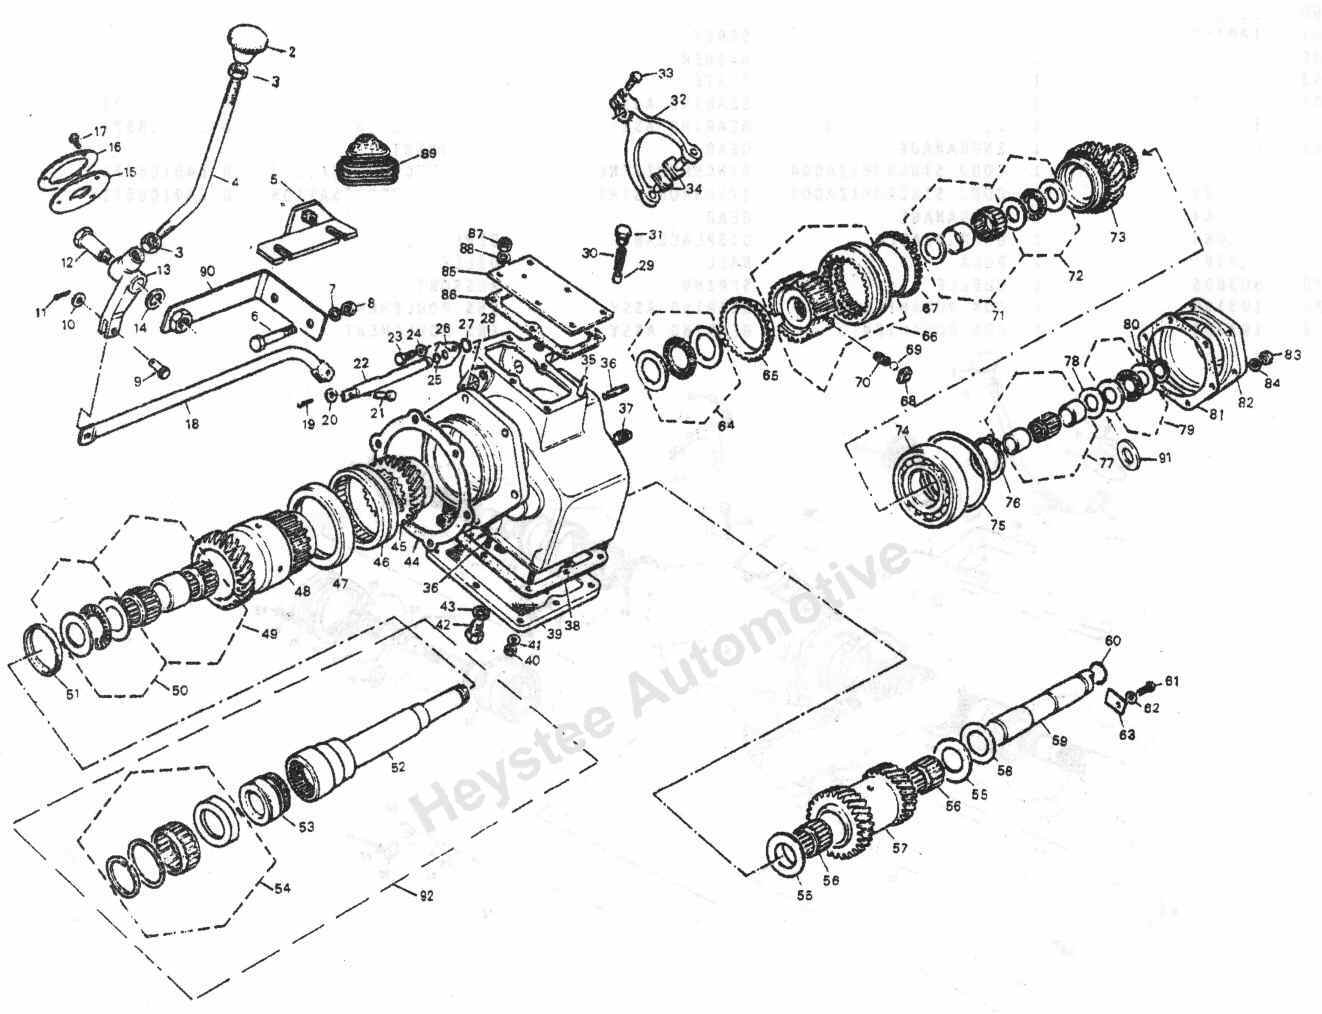 Service manual [Exploded View 2005 Land Rover Freelander